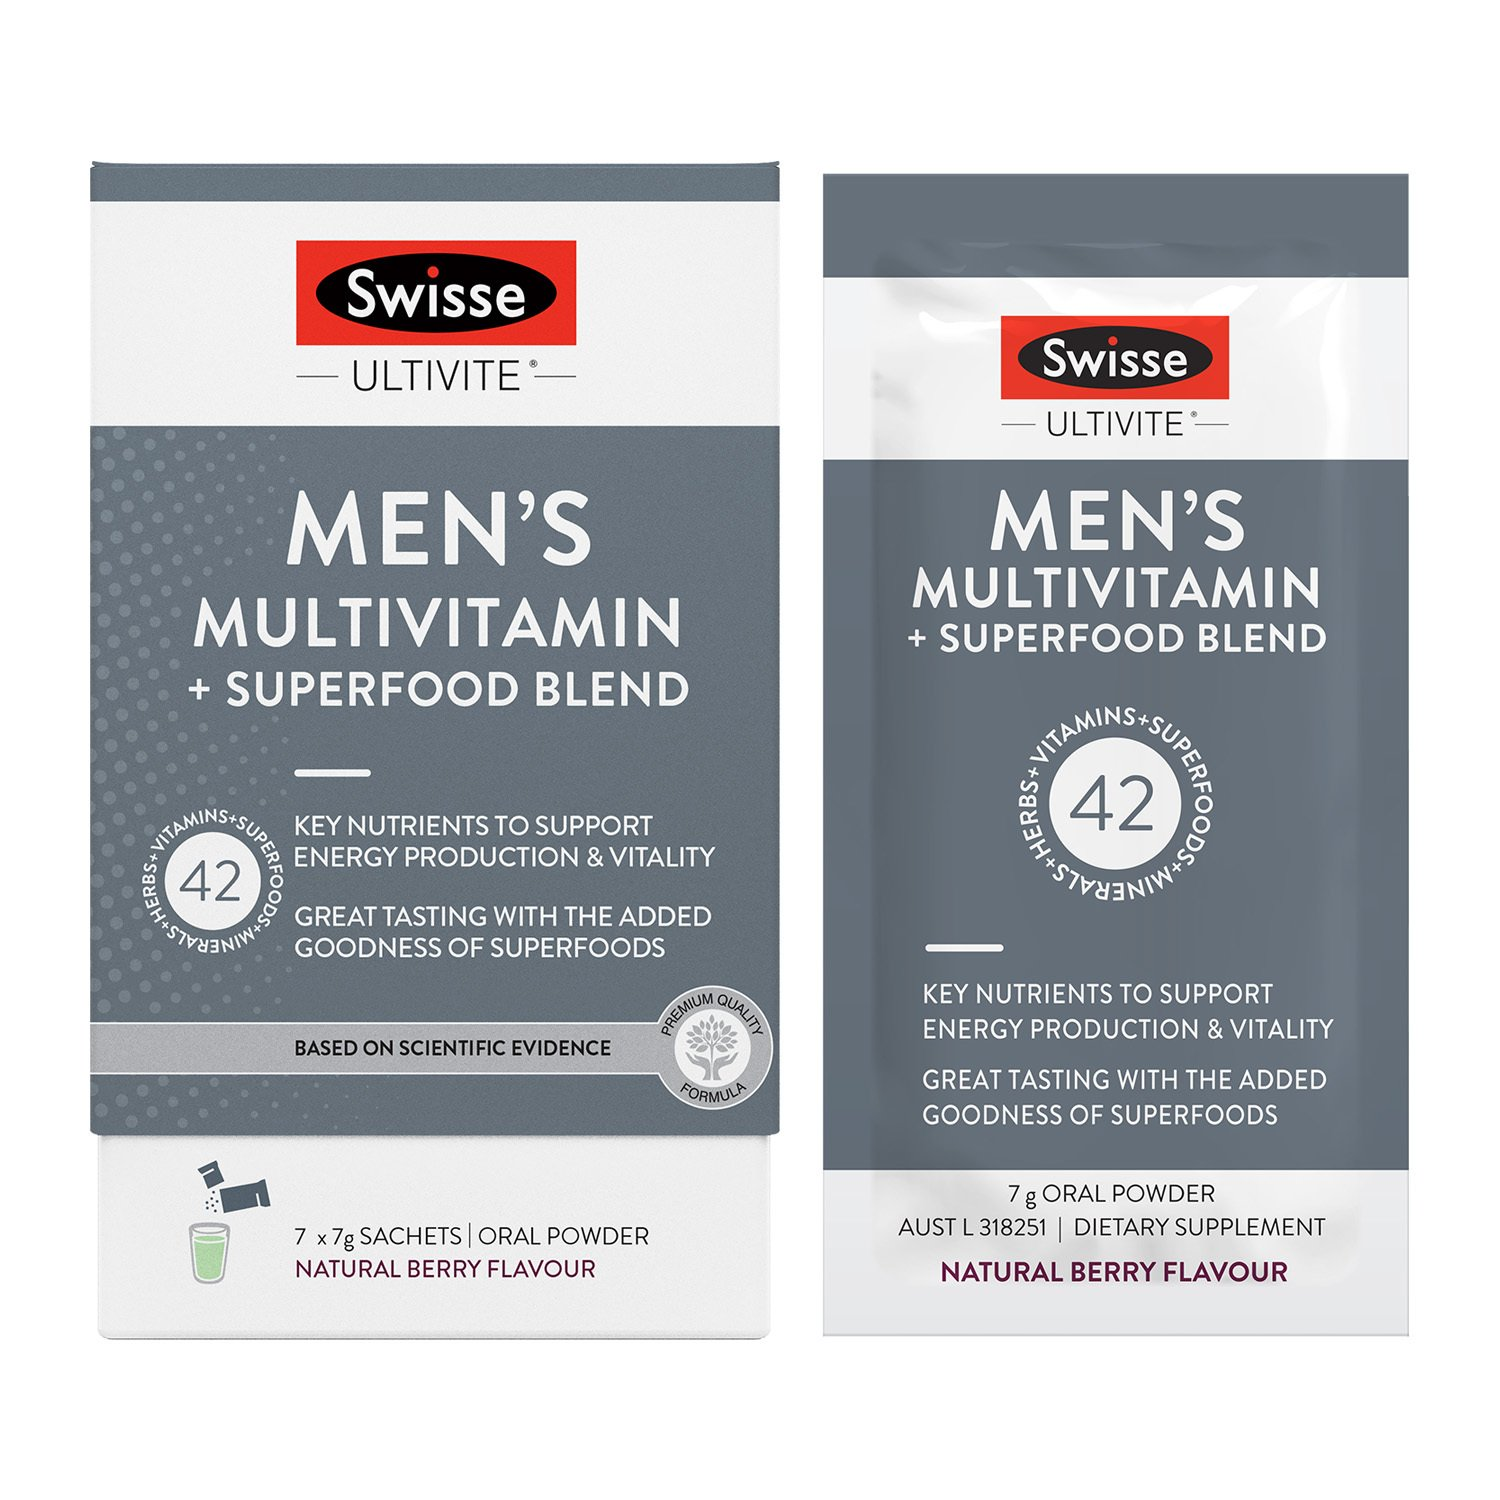 Swisse Ultivite Men's Multivitamin + Superfood Blend is a comprehensive multi-nutrient powder